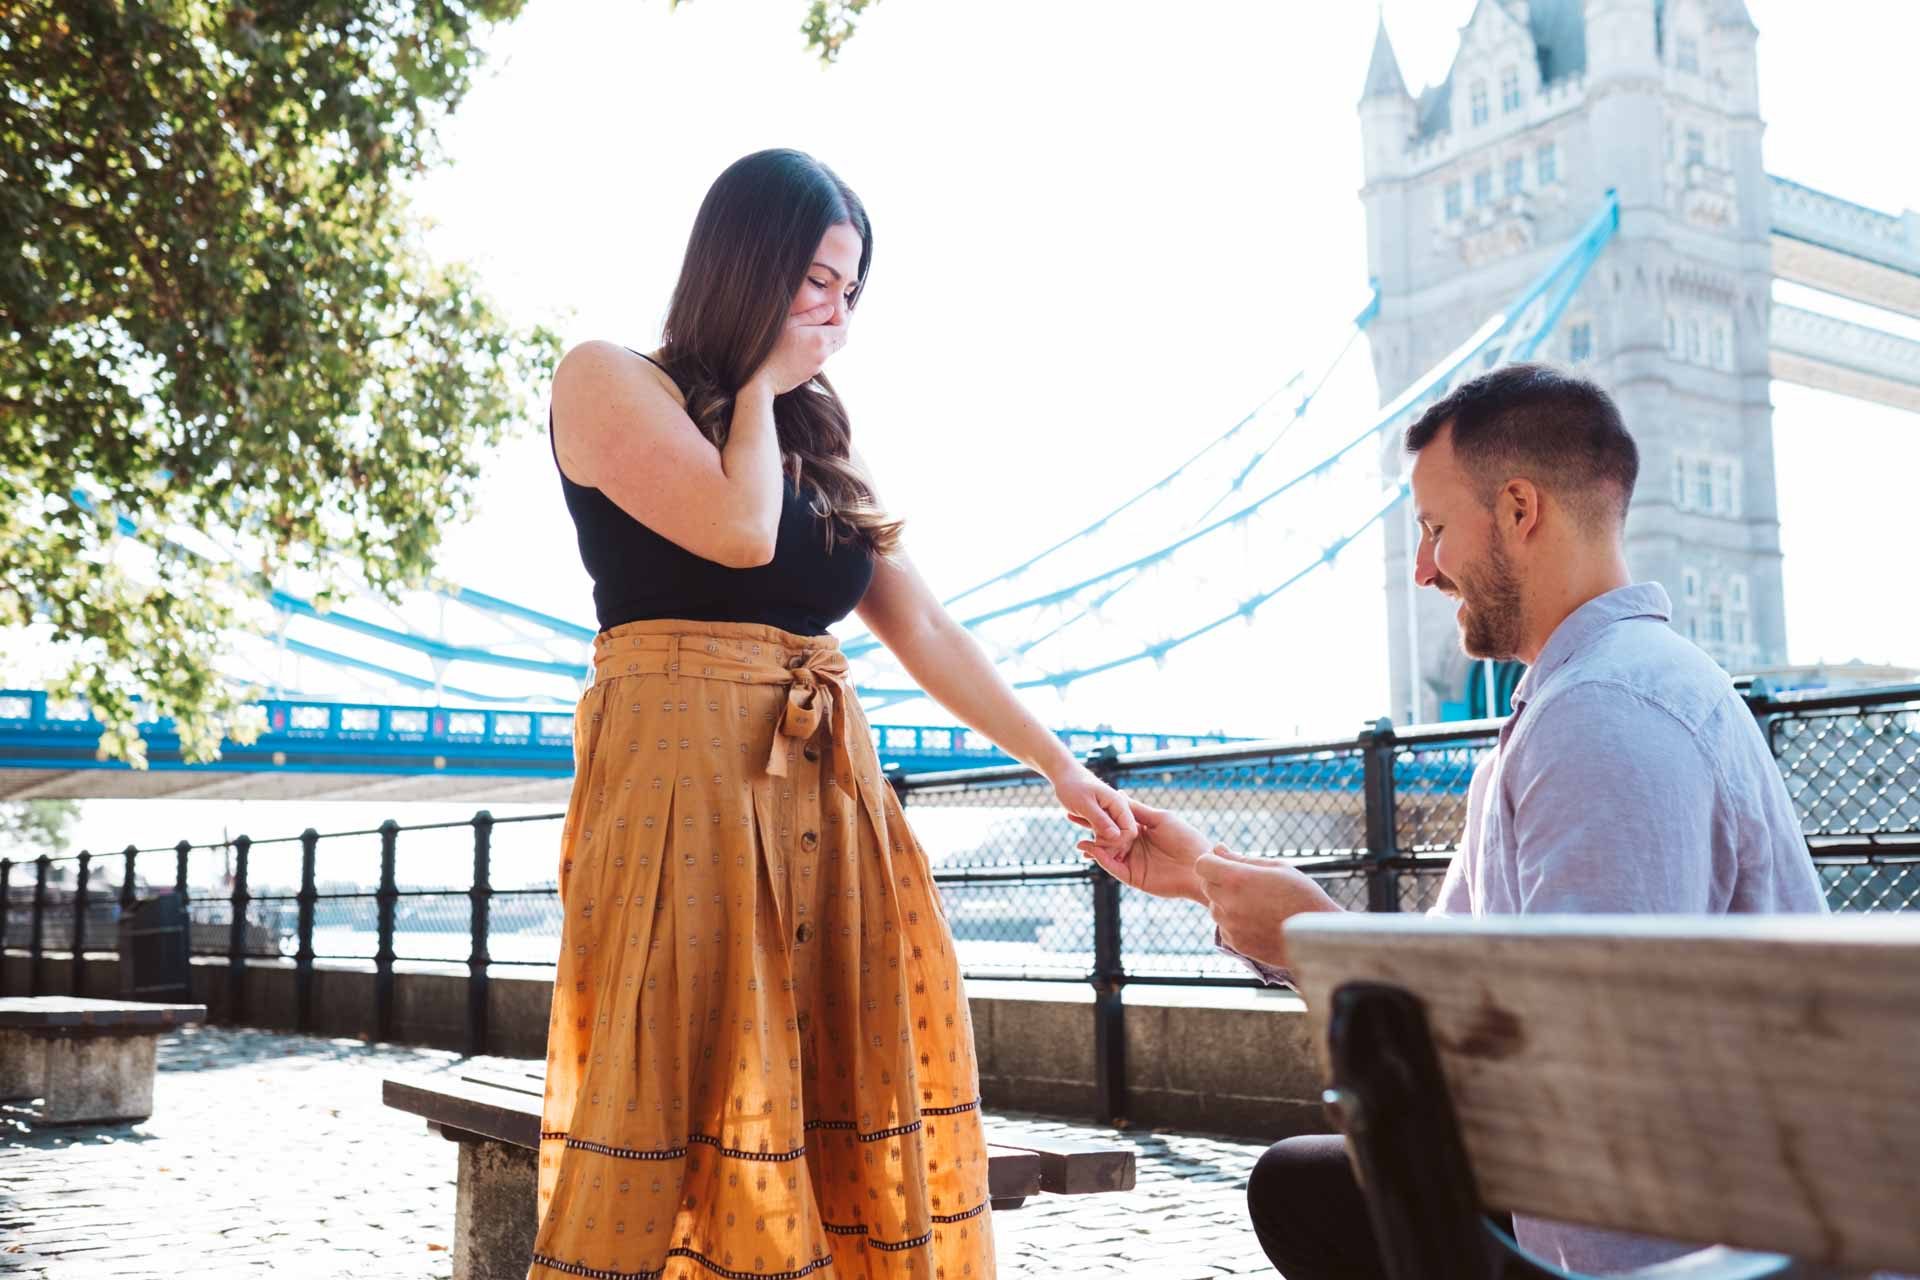 proposal photographer london by Tower Bridge